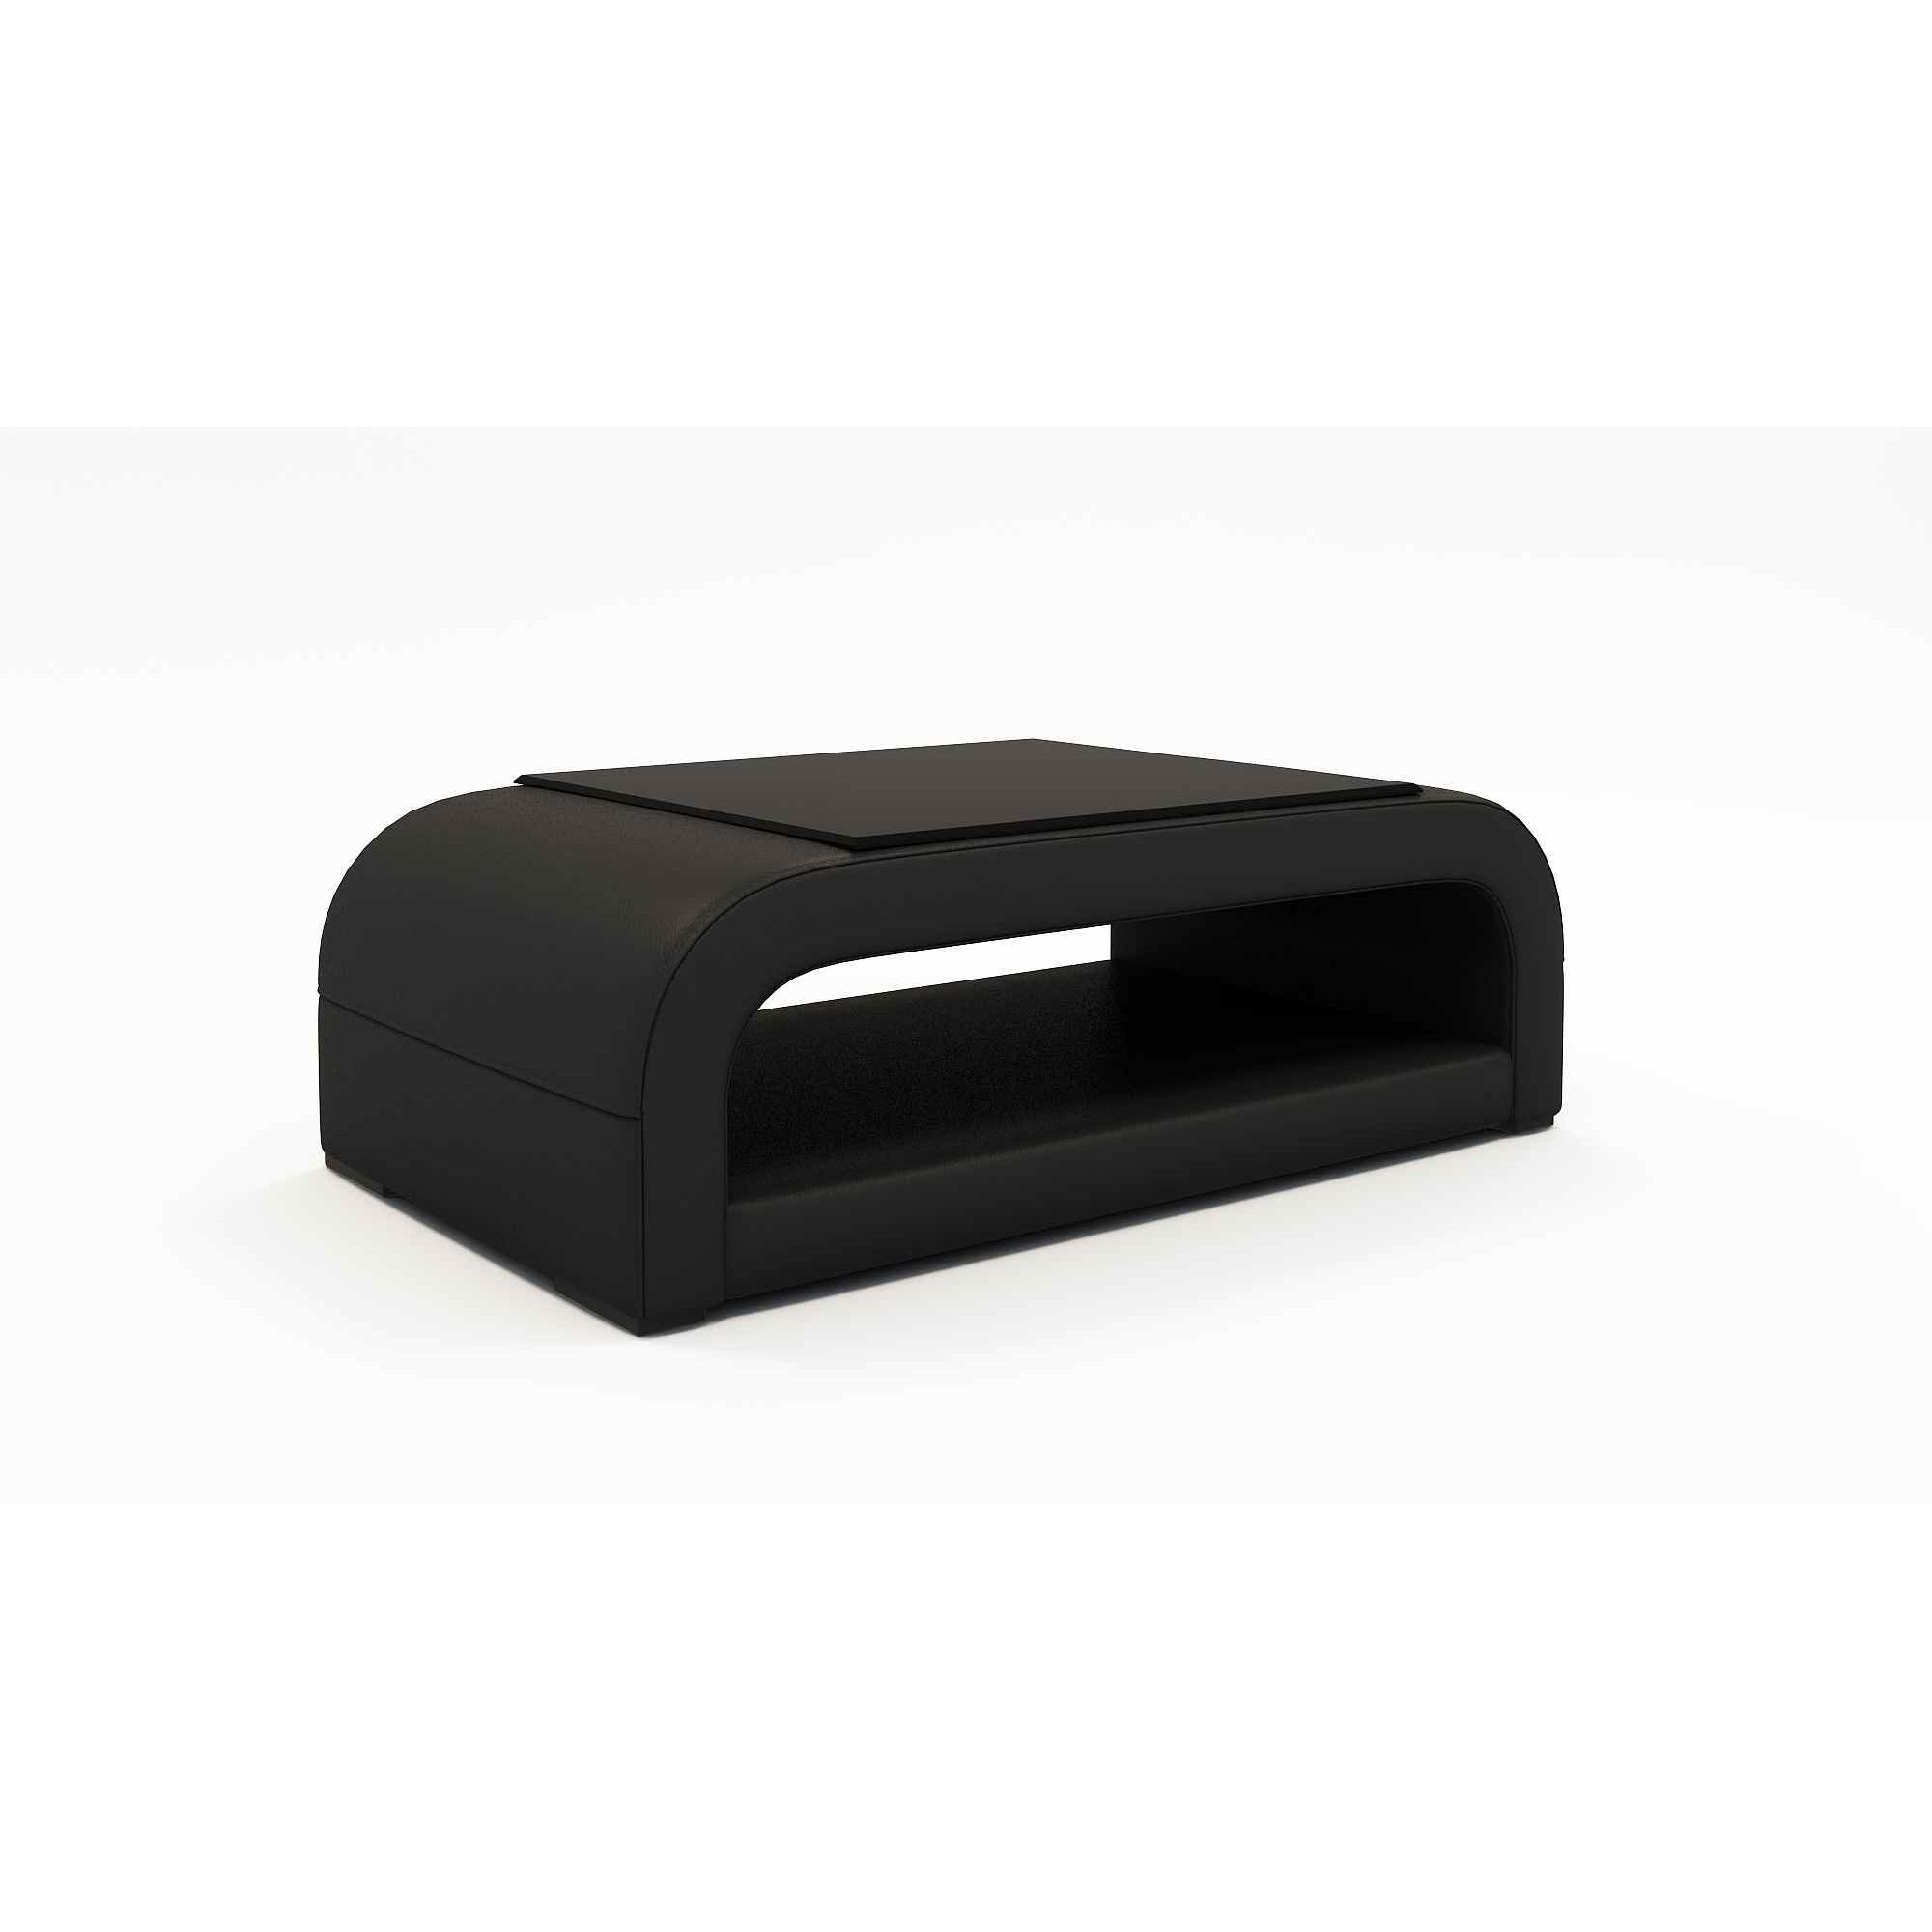 Table Basse Design Noire Deco In Paris Table Basse Design Noir Nelly Nelly Tab